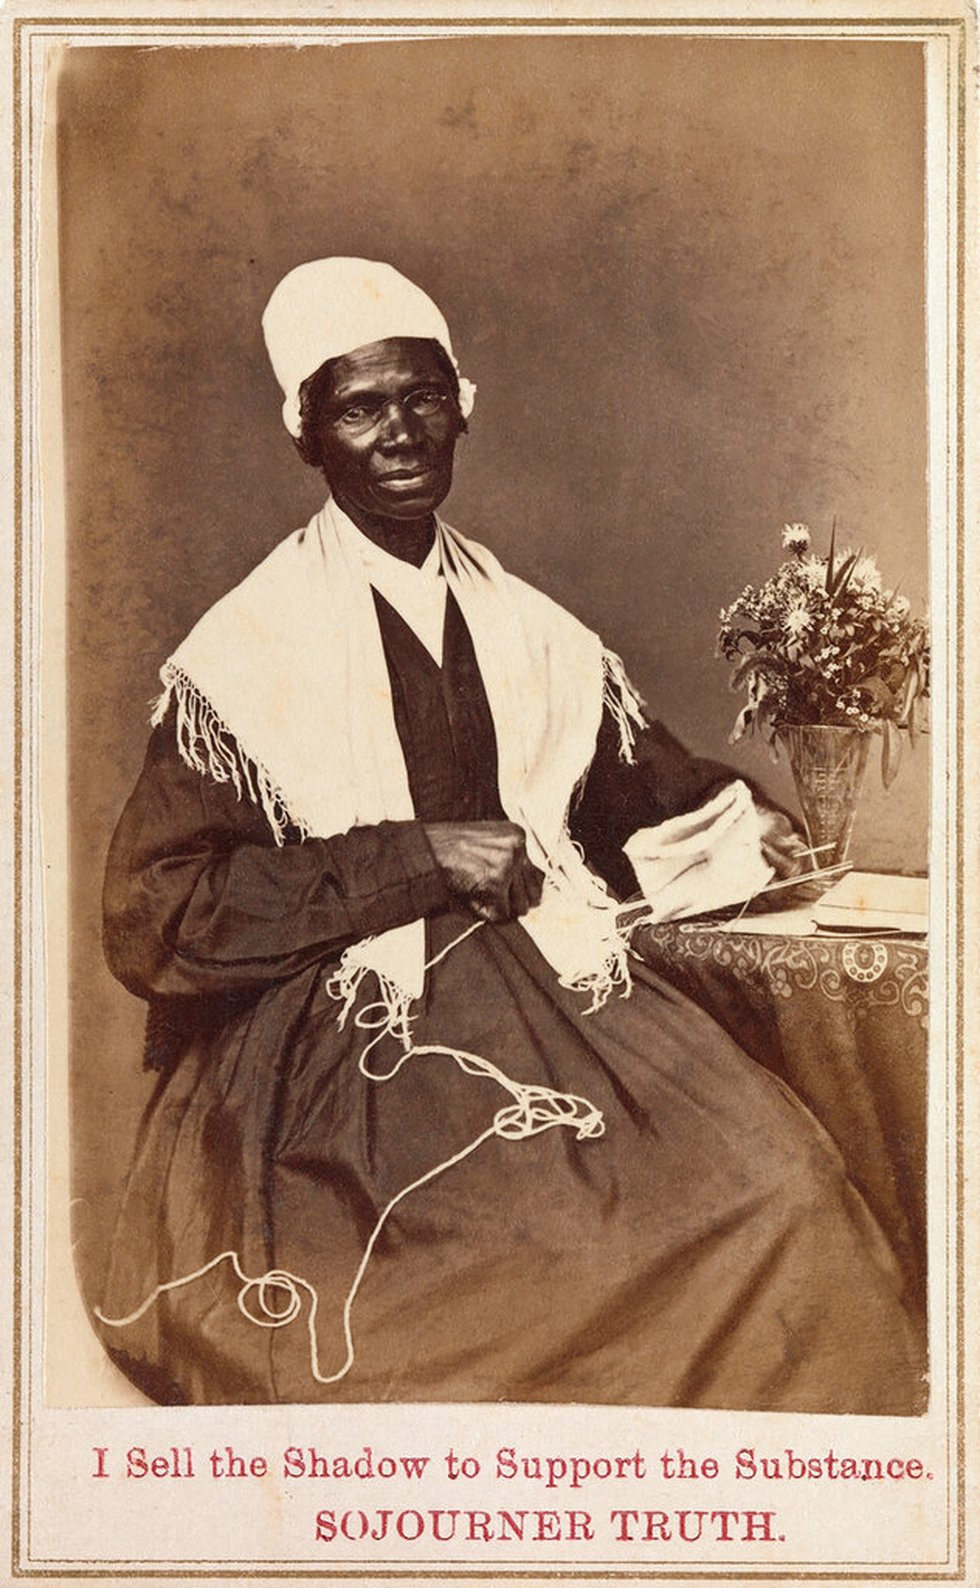 Born Isabella Baumfree to a family of slaves in Ulster County, New York, the sixty-seven year...